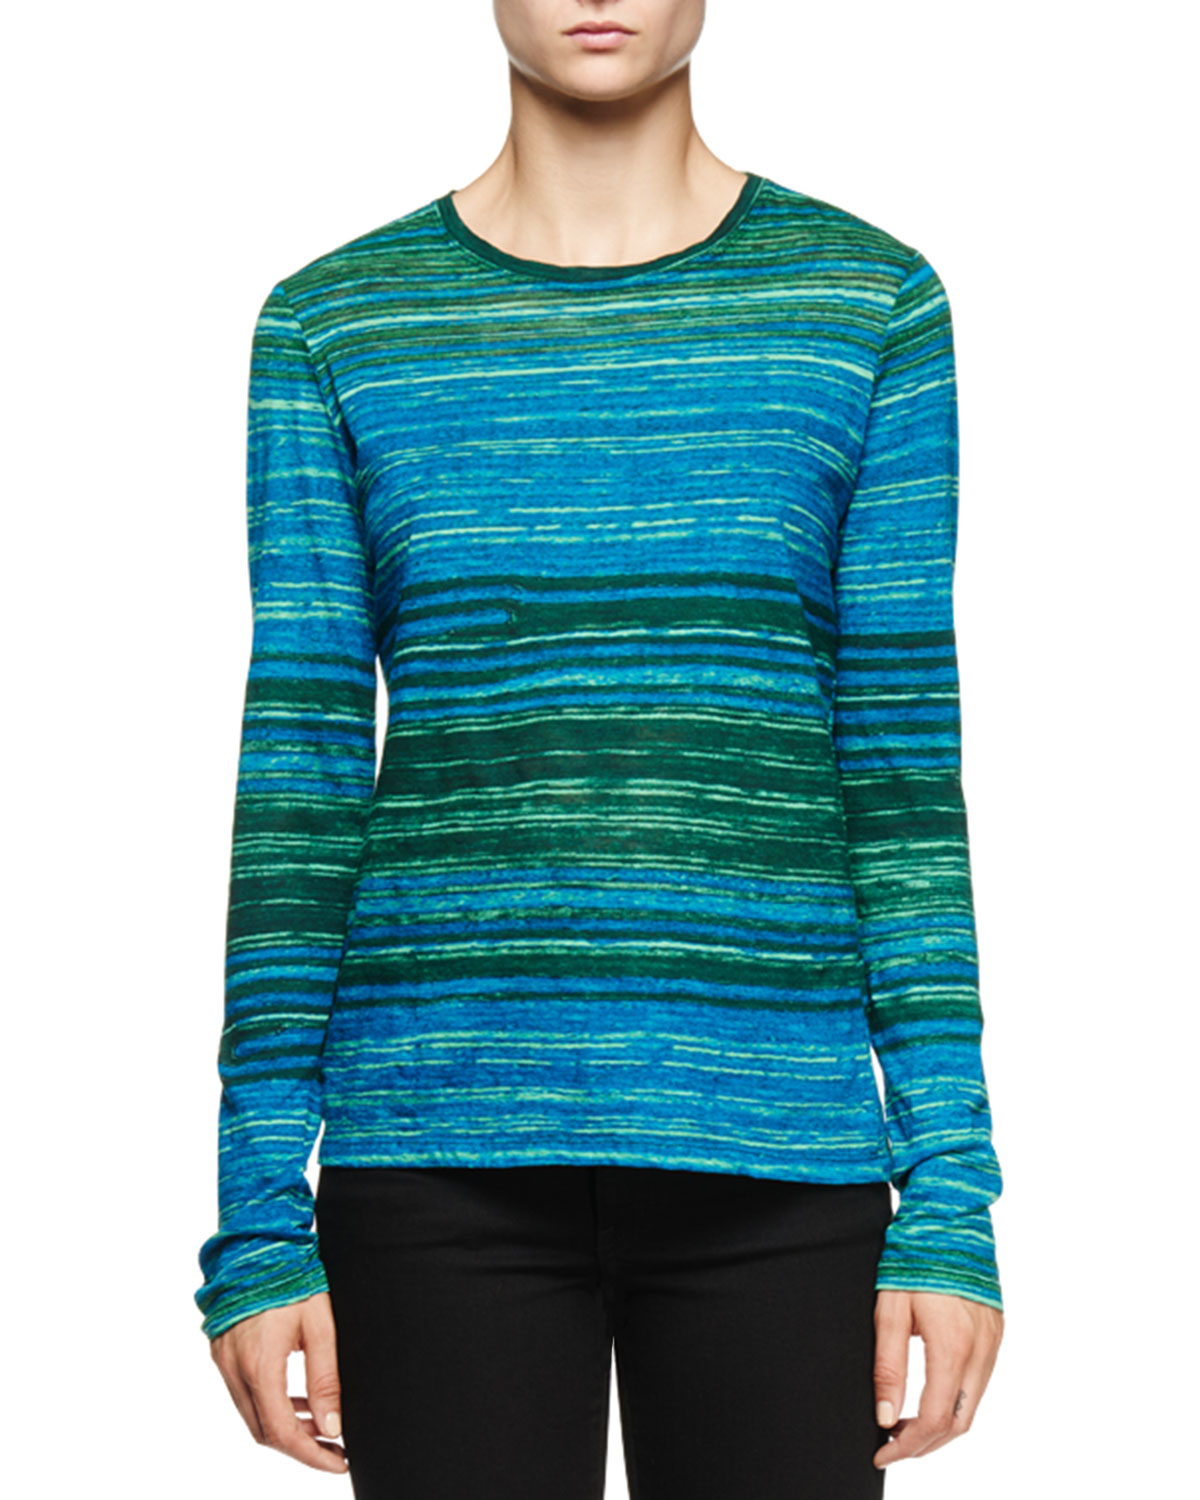 Proenza schouler long sleeve multi striped t shirt in blue for Black and blue long sleeve shirt